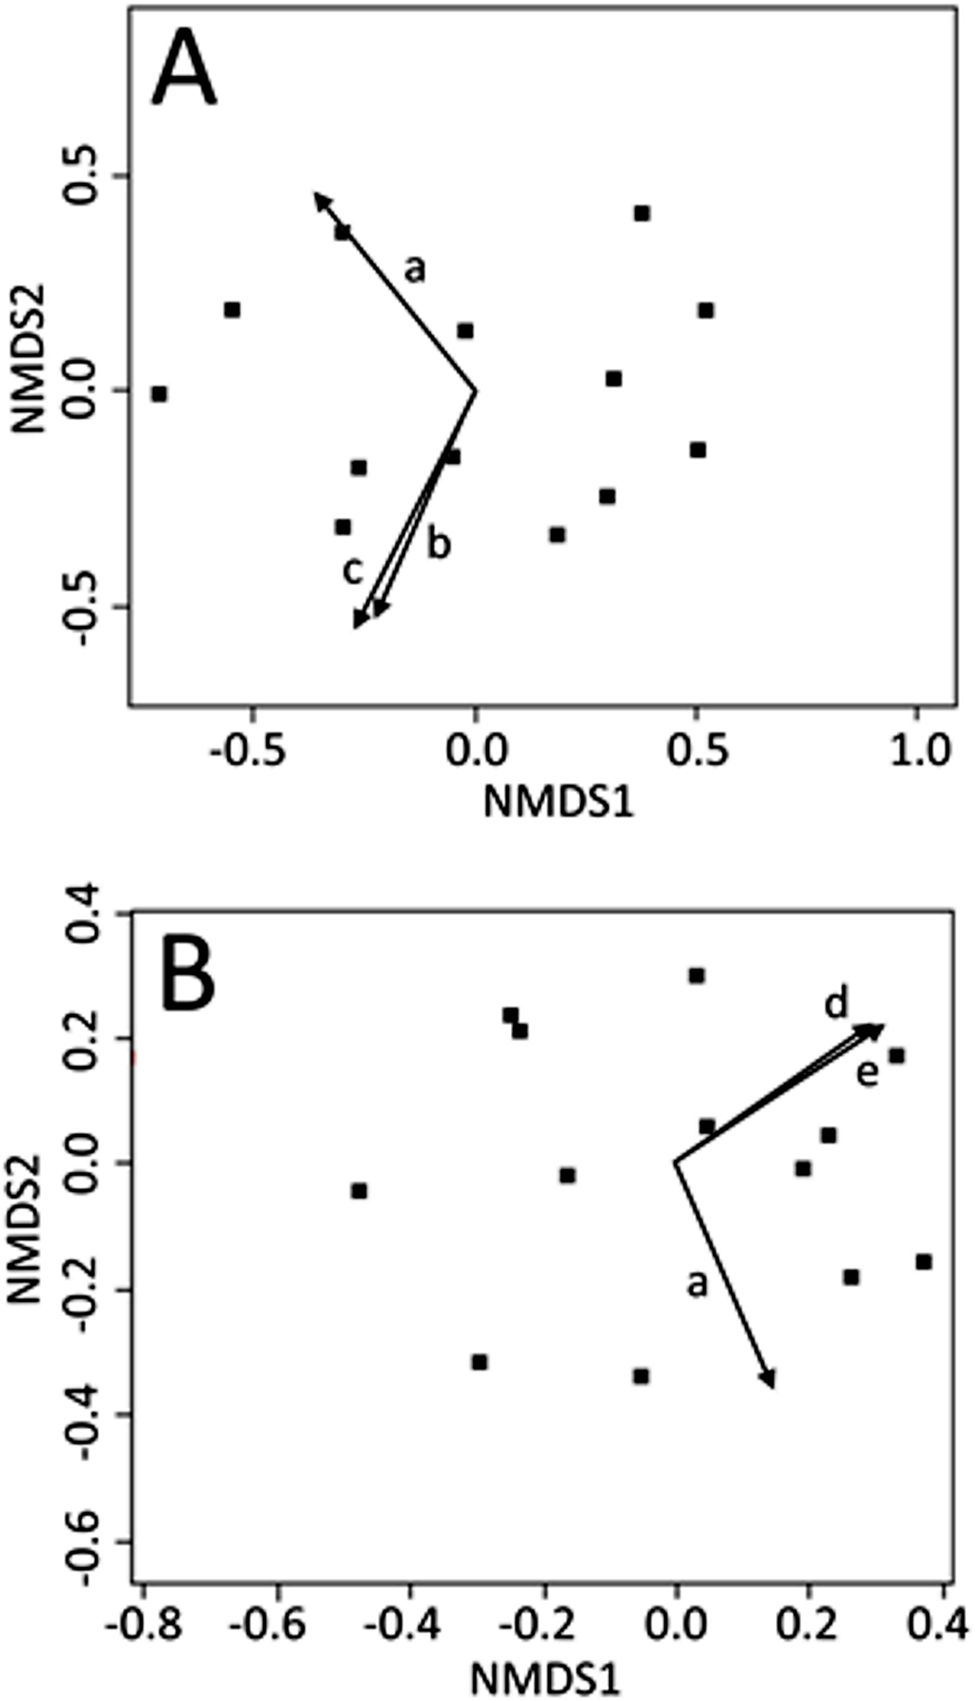 Community composition of zooplankton exported from a shallow